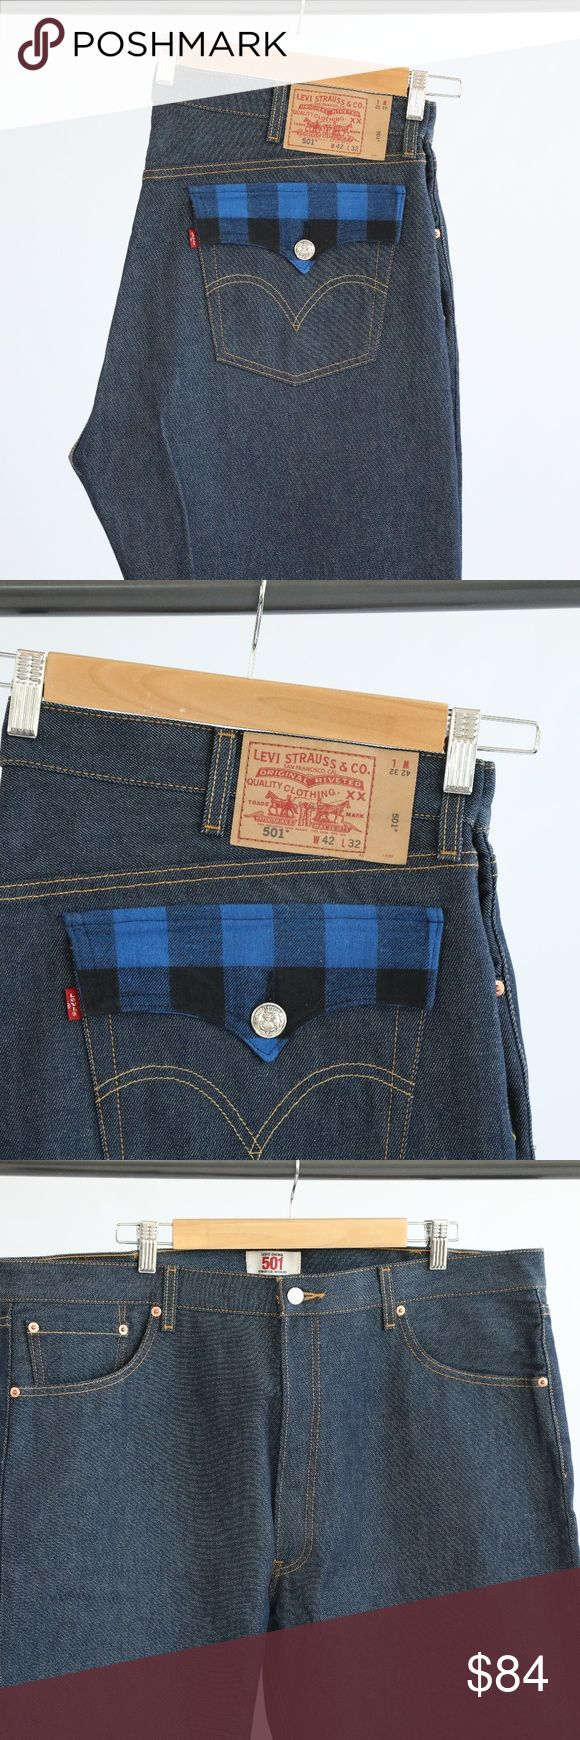 """Levi's Original 501 Straight Leg Button-Fly Jeans Levi's Original 501 straight leg button-fly jeans. 100% cotton. Blue and plaid pocket fold detailing on back. Buttons have light discoloration. Dark wash with gold colored stitching. 32"""" inseam on the pants. Levi's Jeans Straight"""